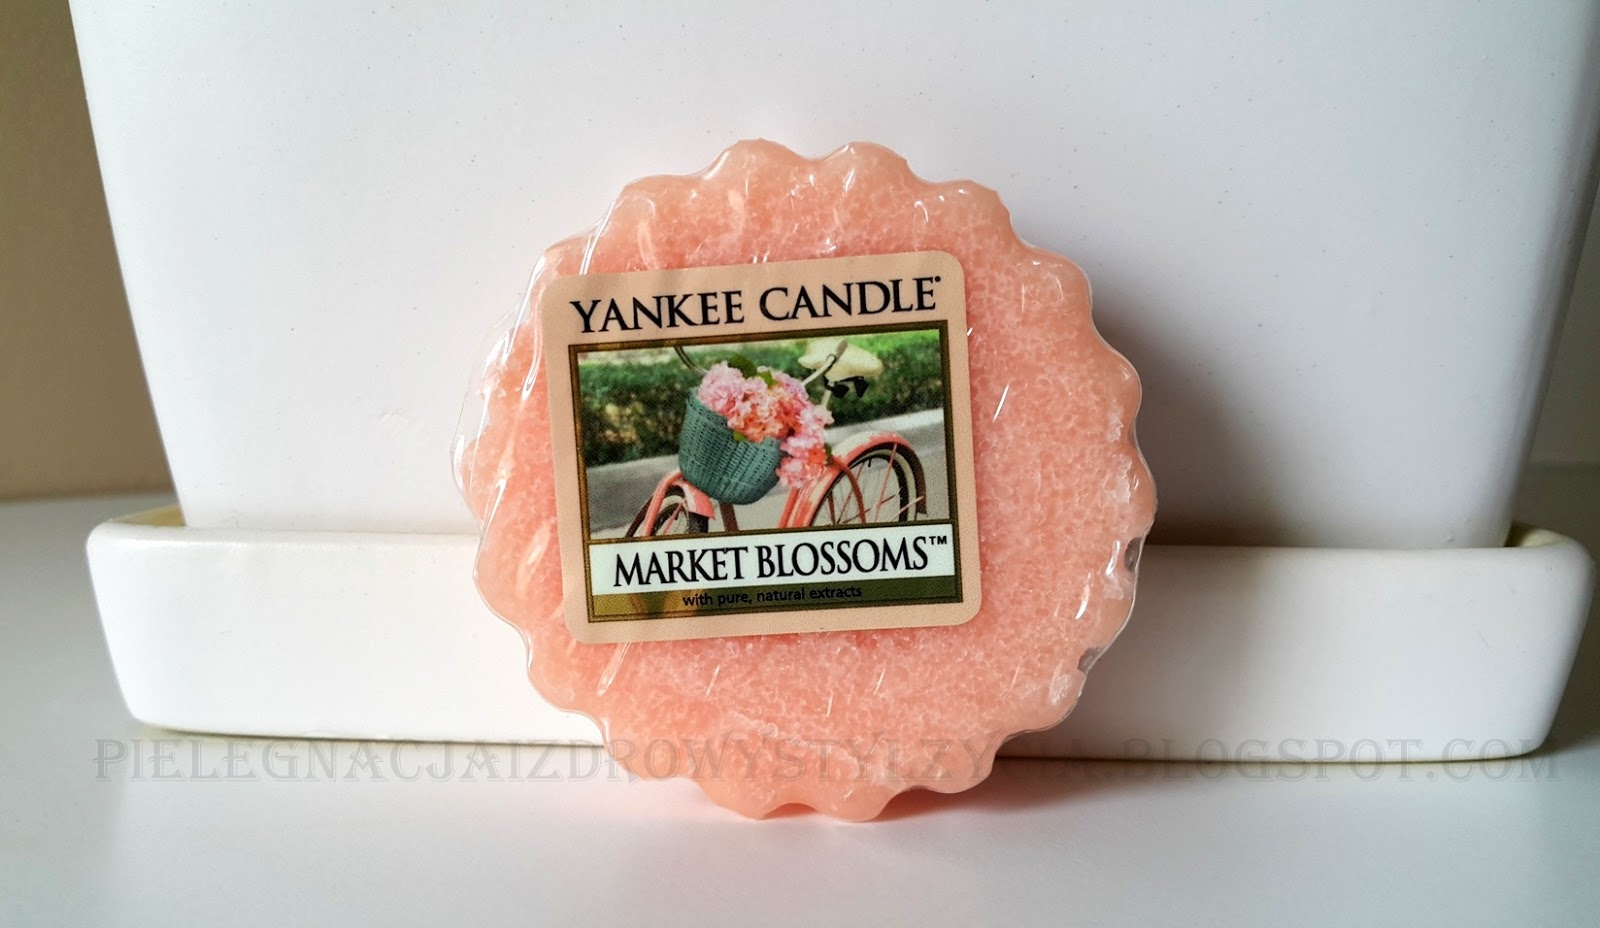 Yankee Candle Market Blossoms